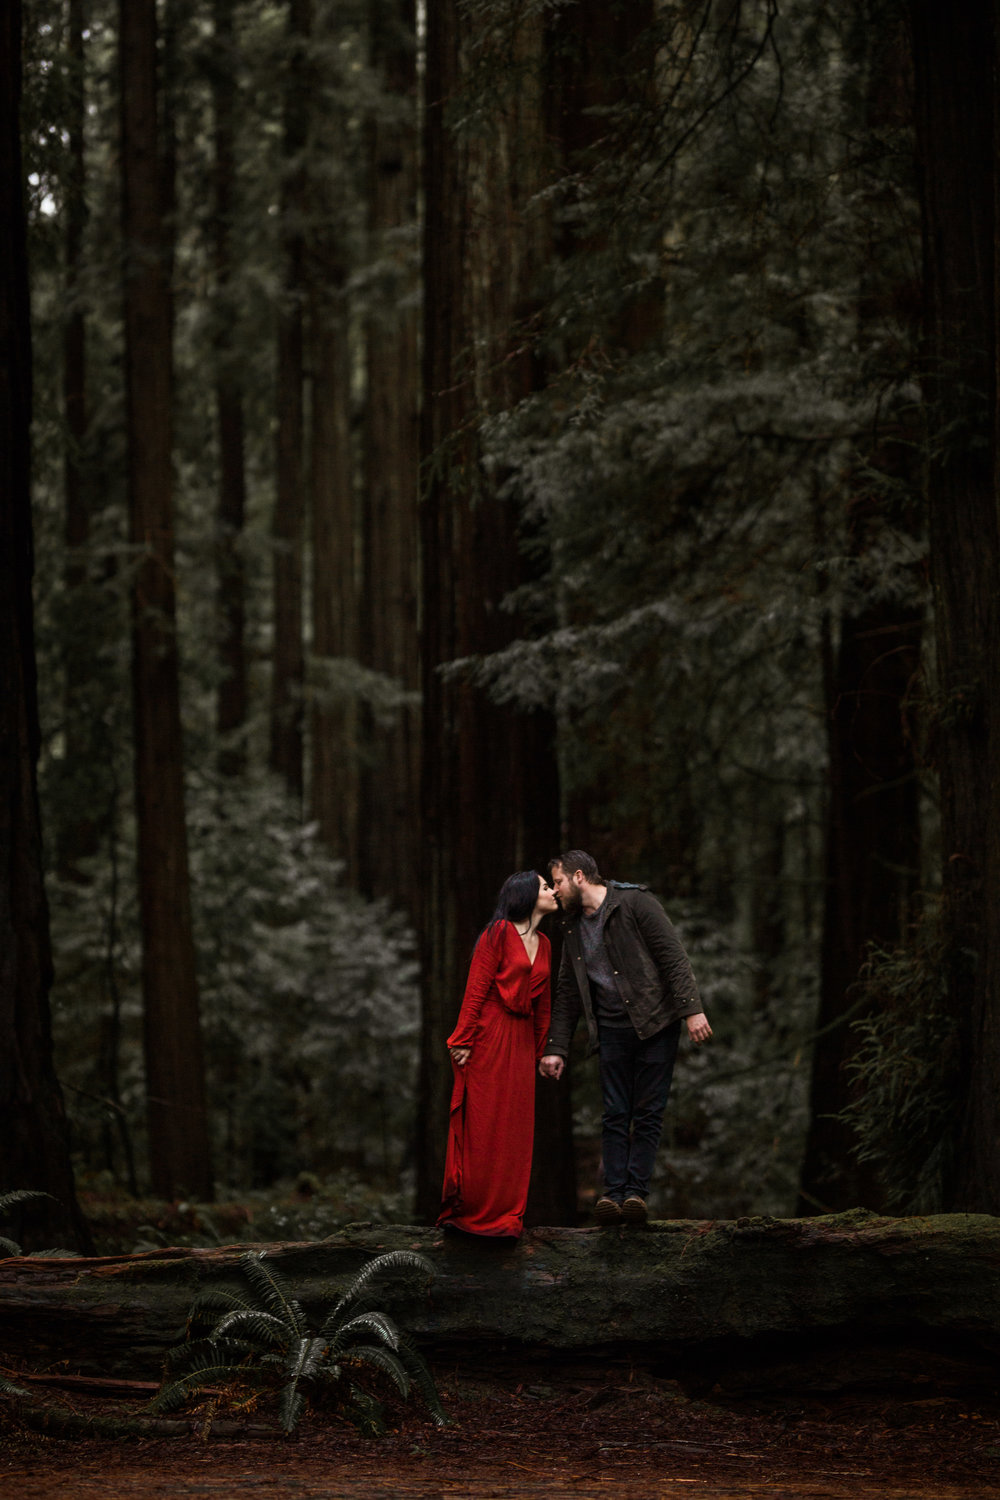 nicole-daacke-photography-redwoods-national-park-forest-rainy-foggy-adventure-engagement-session-humboldt-county-old-growth-redwood-tree-elopement-intimate-wedding-photographer-56.jpg